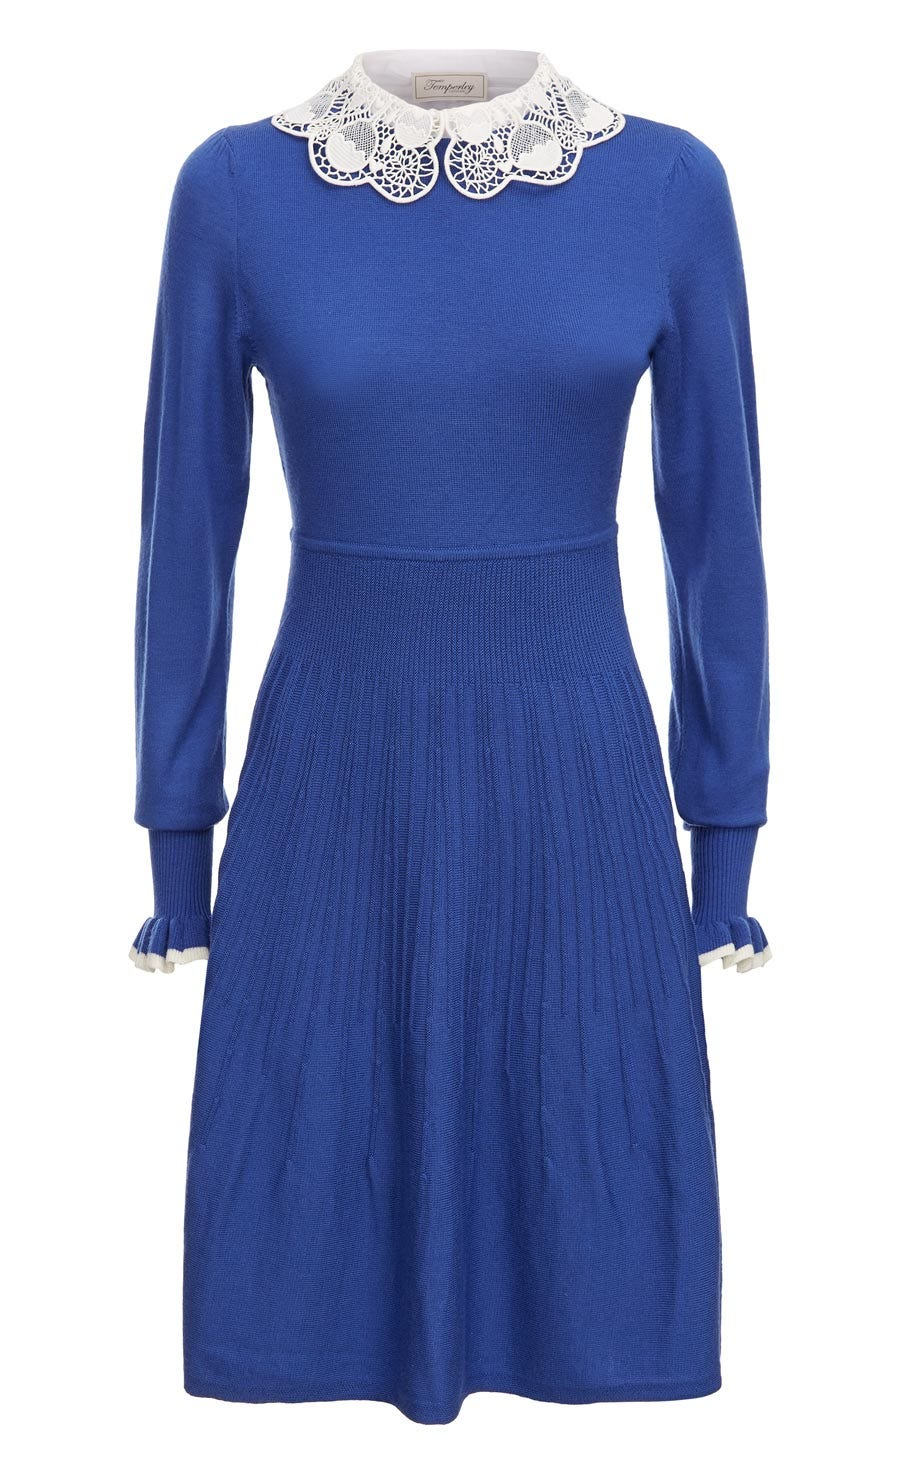 Bliss Sleeved Dress, French Blue